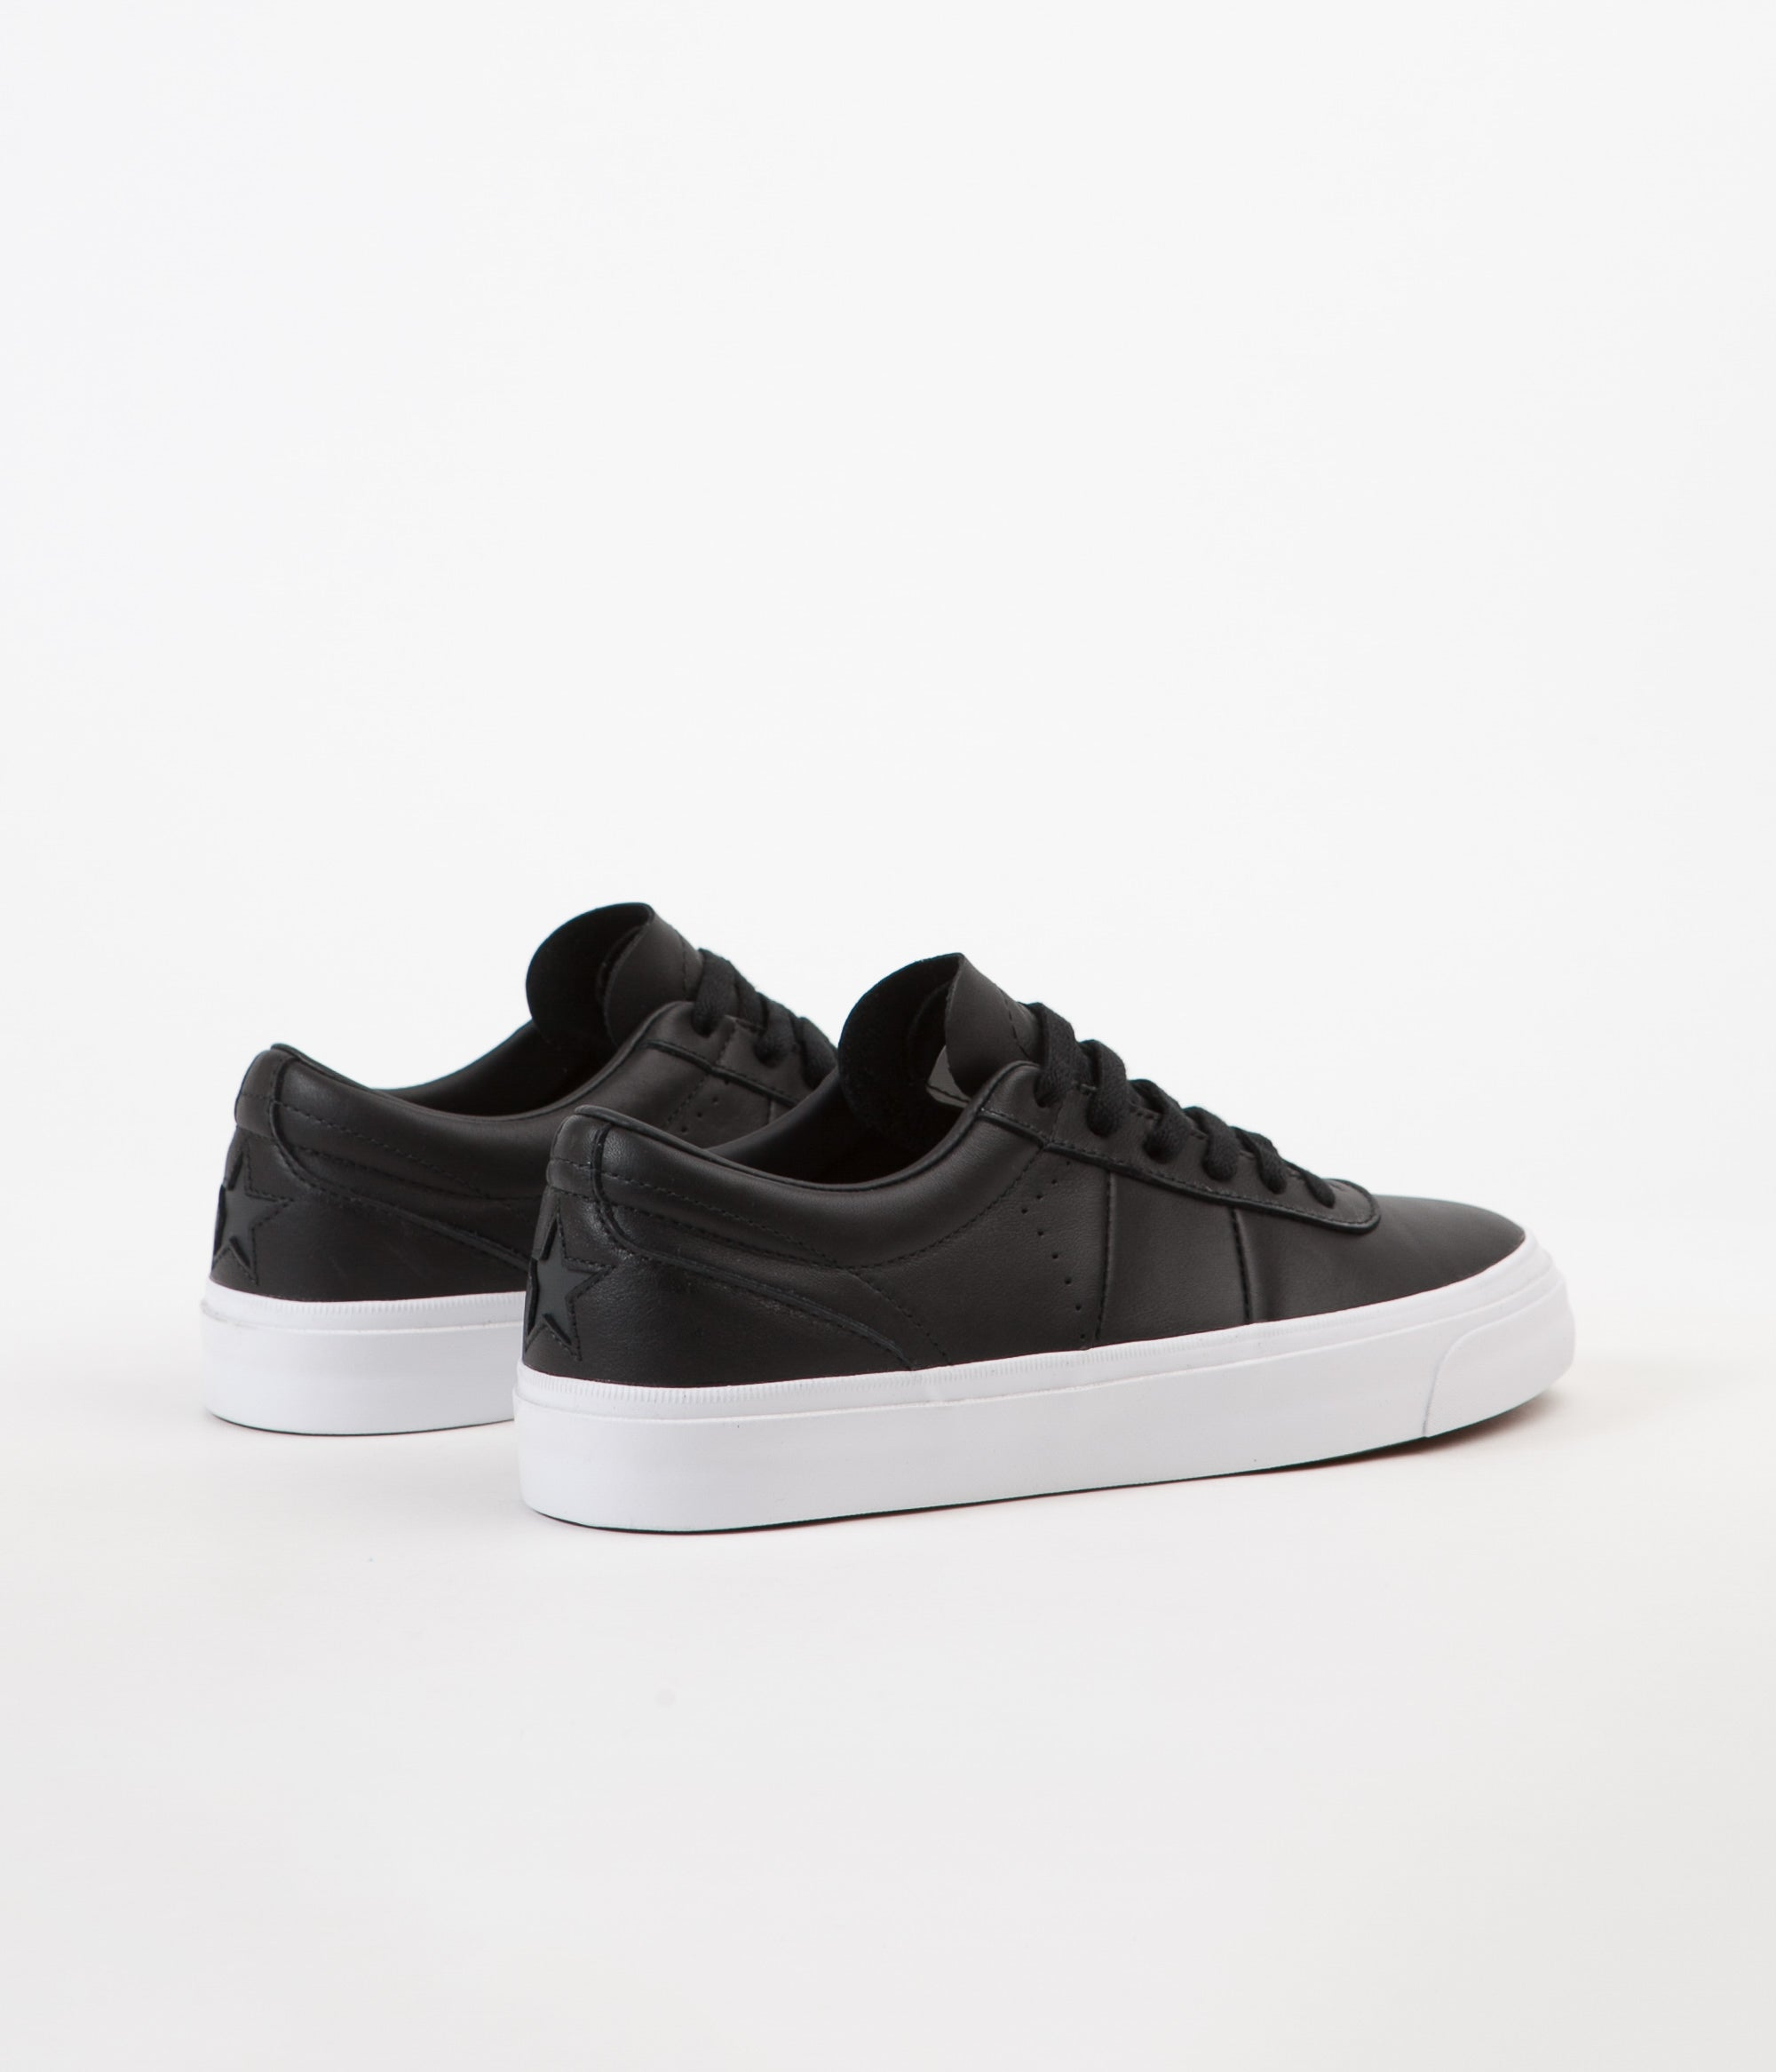 c439c7e89f60 ... Converse x Sage Elsesser One Star CC Pro Ox Shoes - Black   Black    White ...